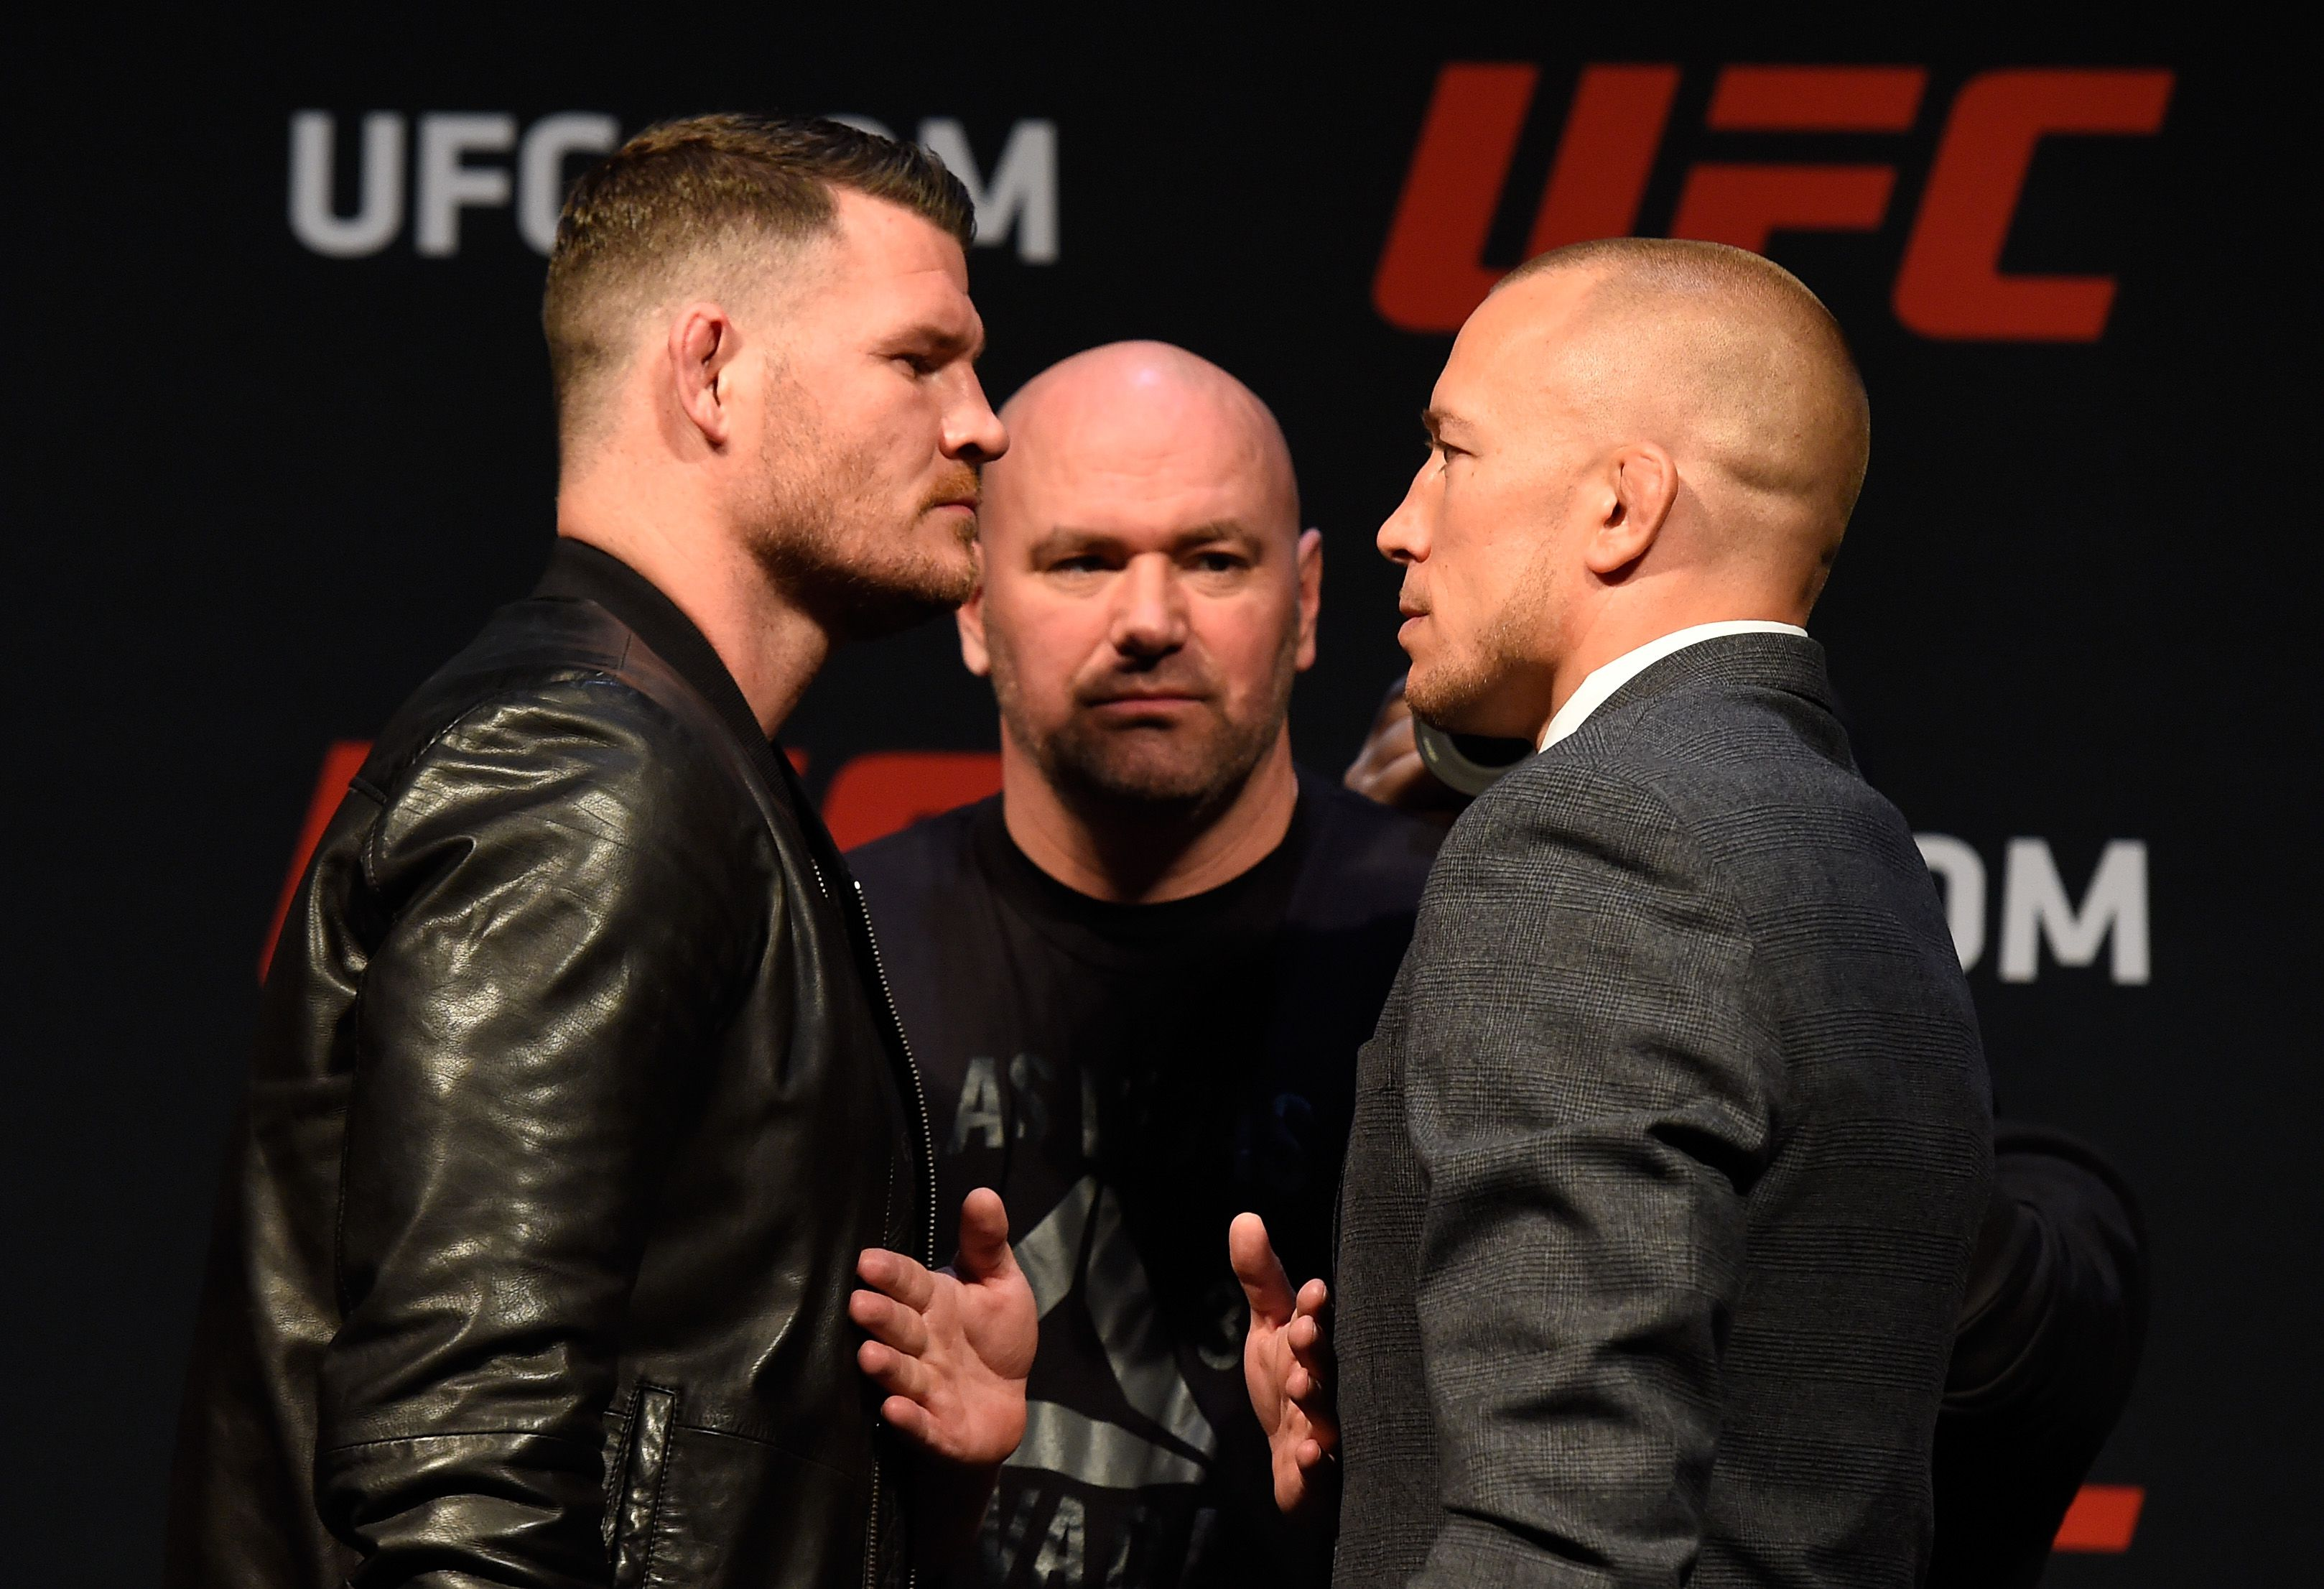 UFC 217 fight card, date, UK TV channel and odds as Bisping vs GSP headlines